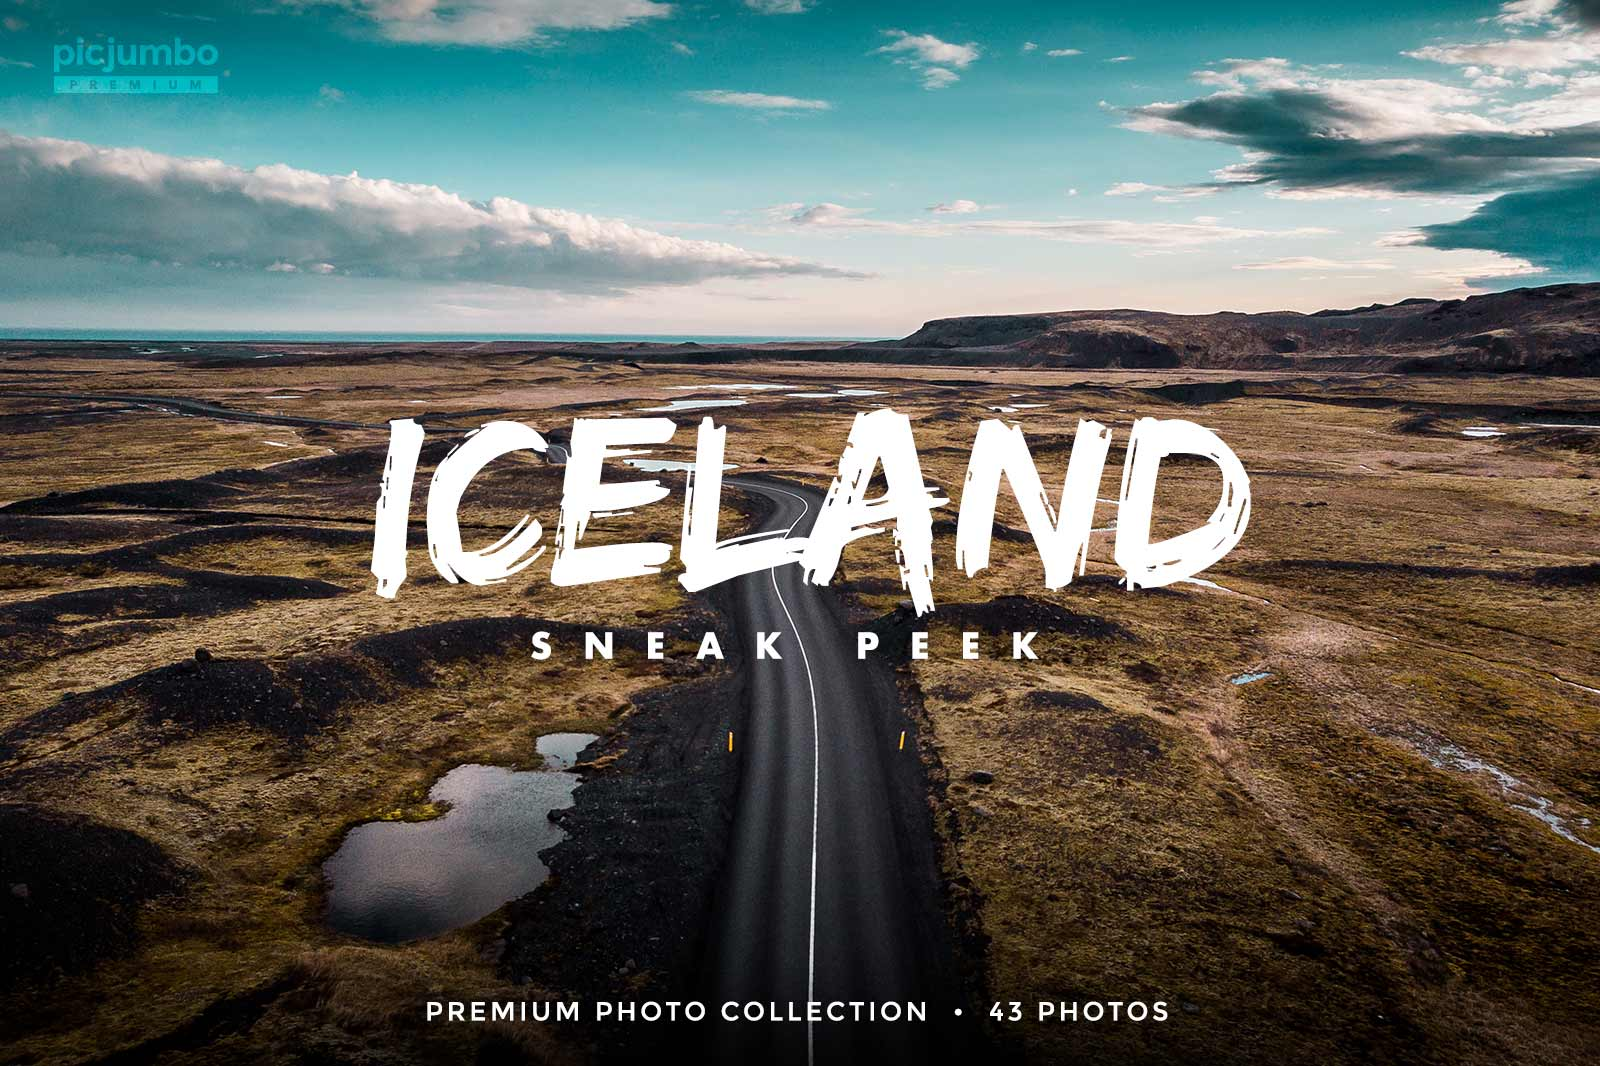 Join PREMIUM and get full collection now: Iceland Sneak Peek